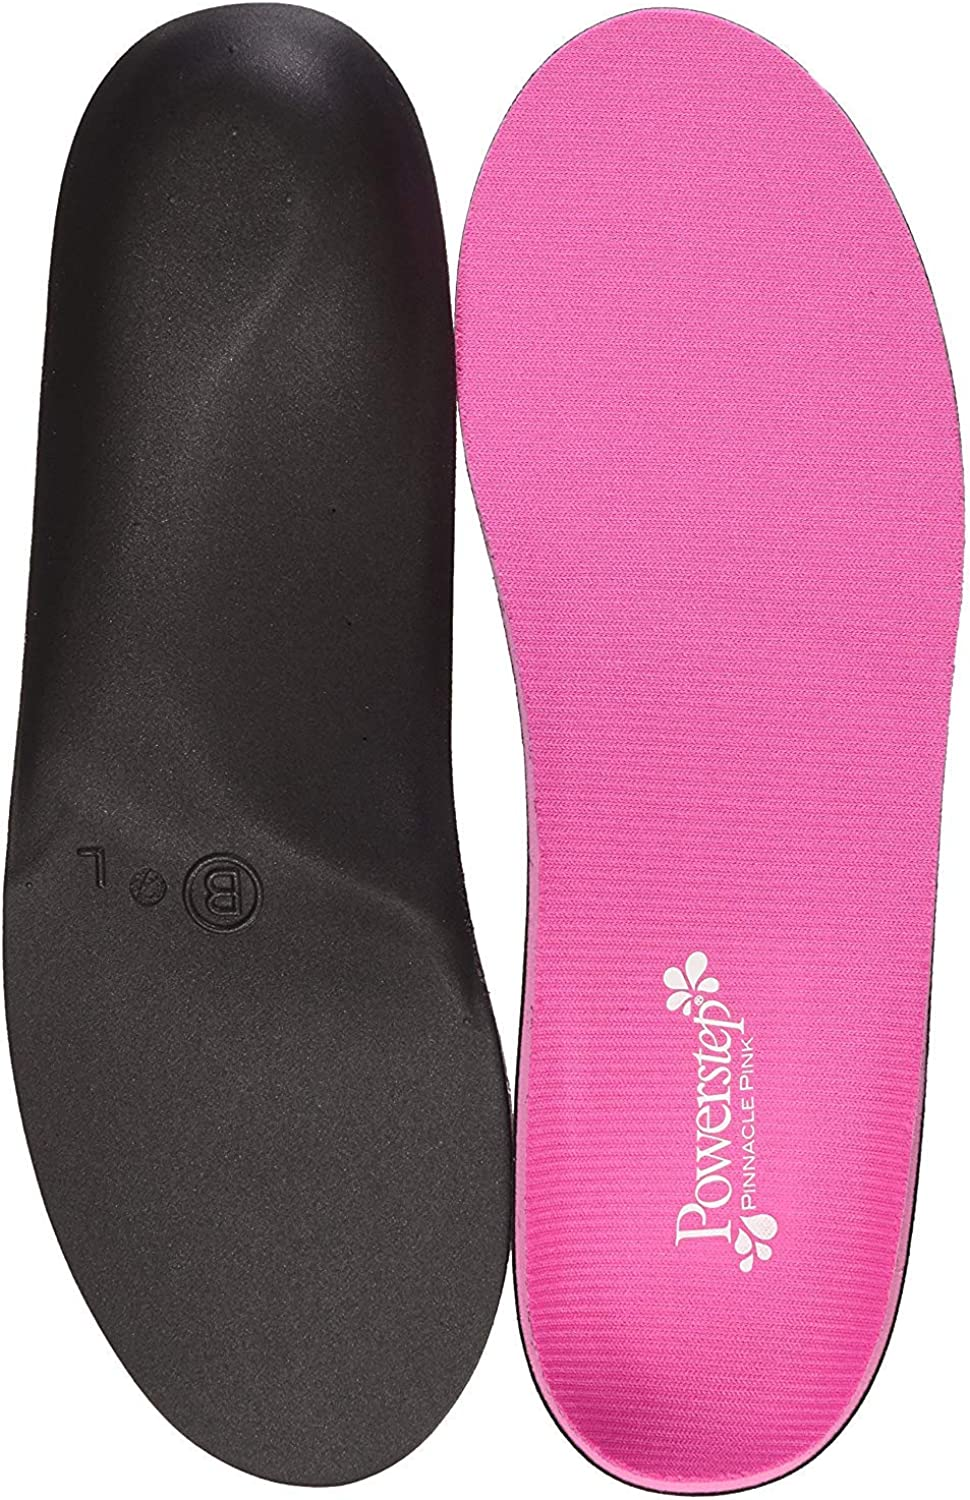 All Sizes Powerstep Pinnacle Maxx Orthotics All Colors